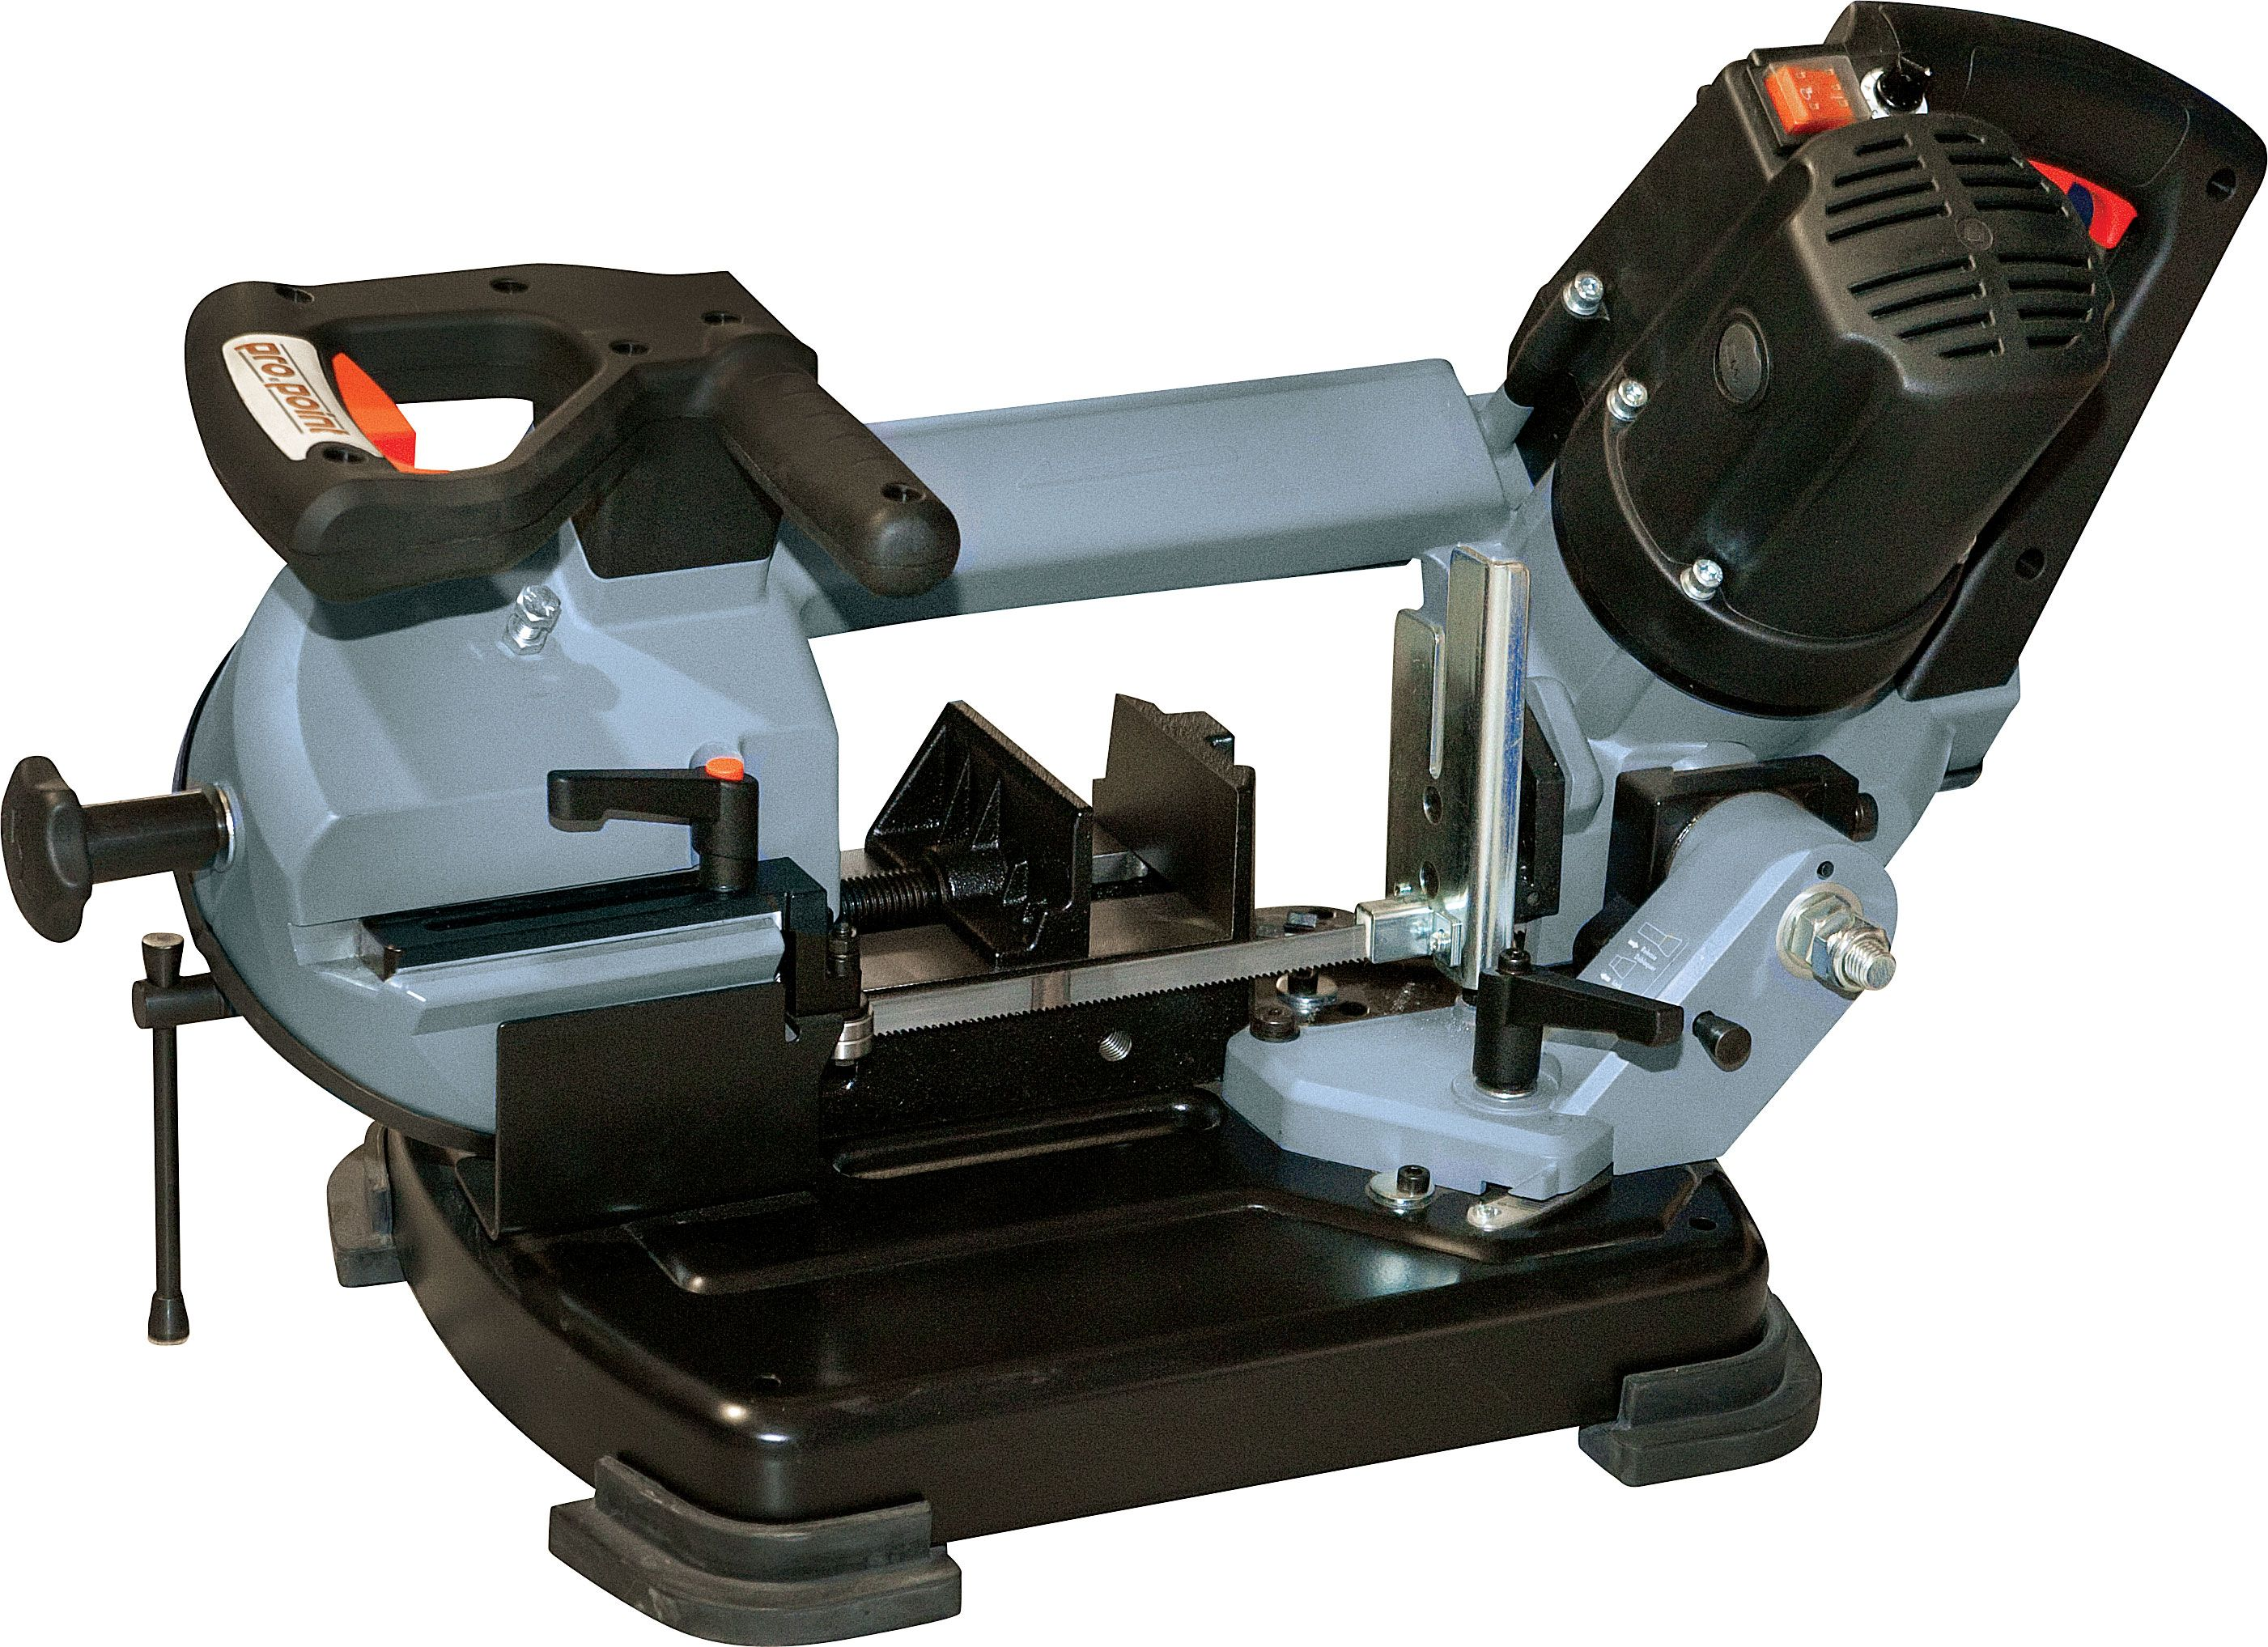 outlet inch spin d sharpen bandsaw details top bench product hei powertec band jsp sears op wid prod saw